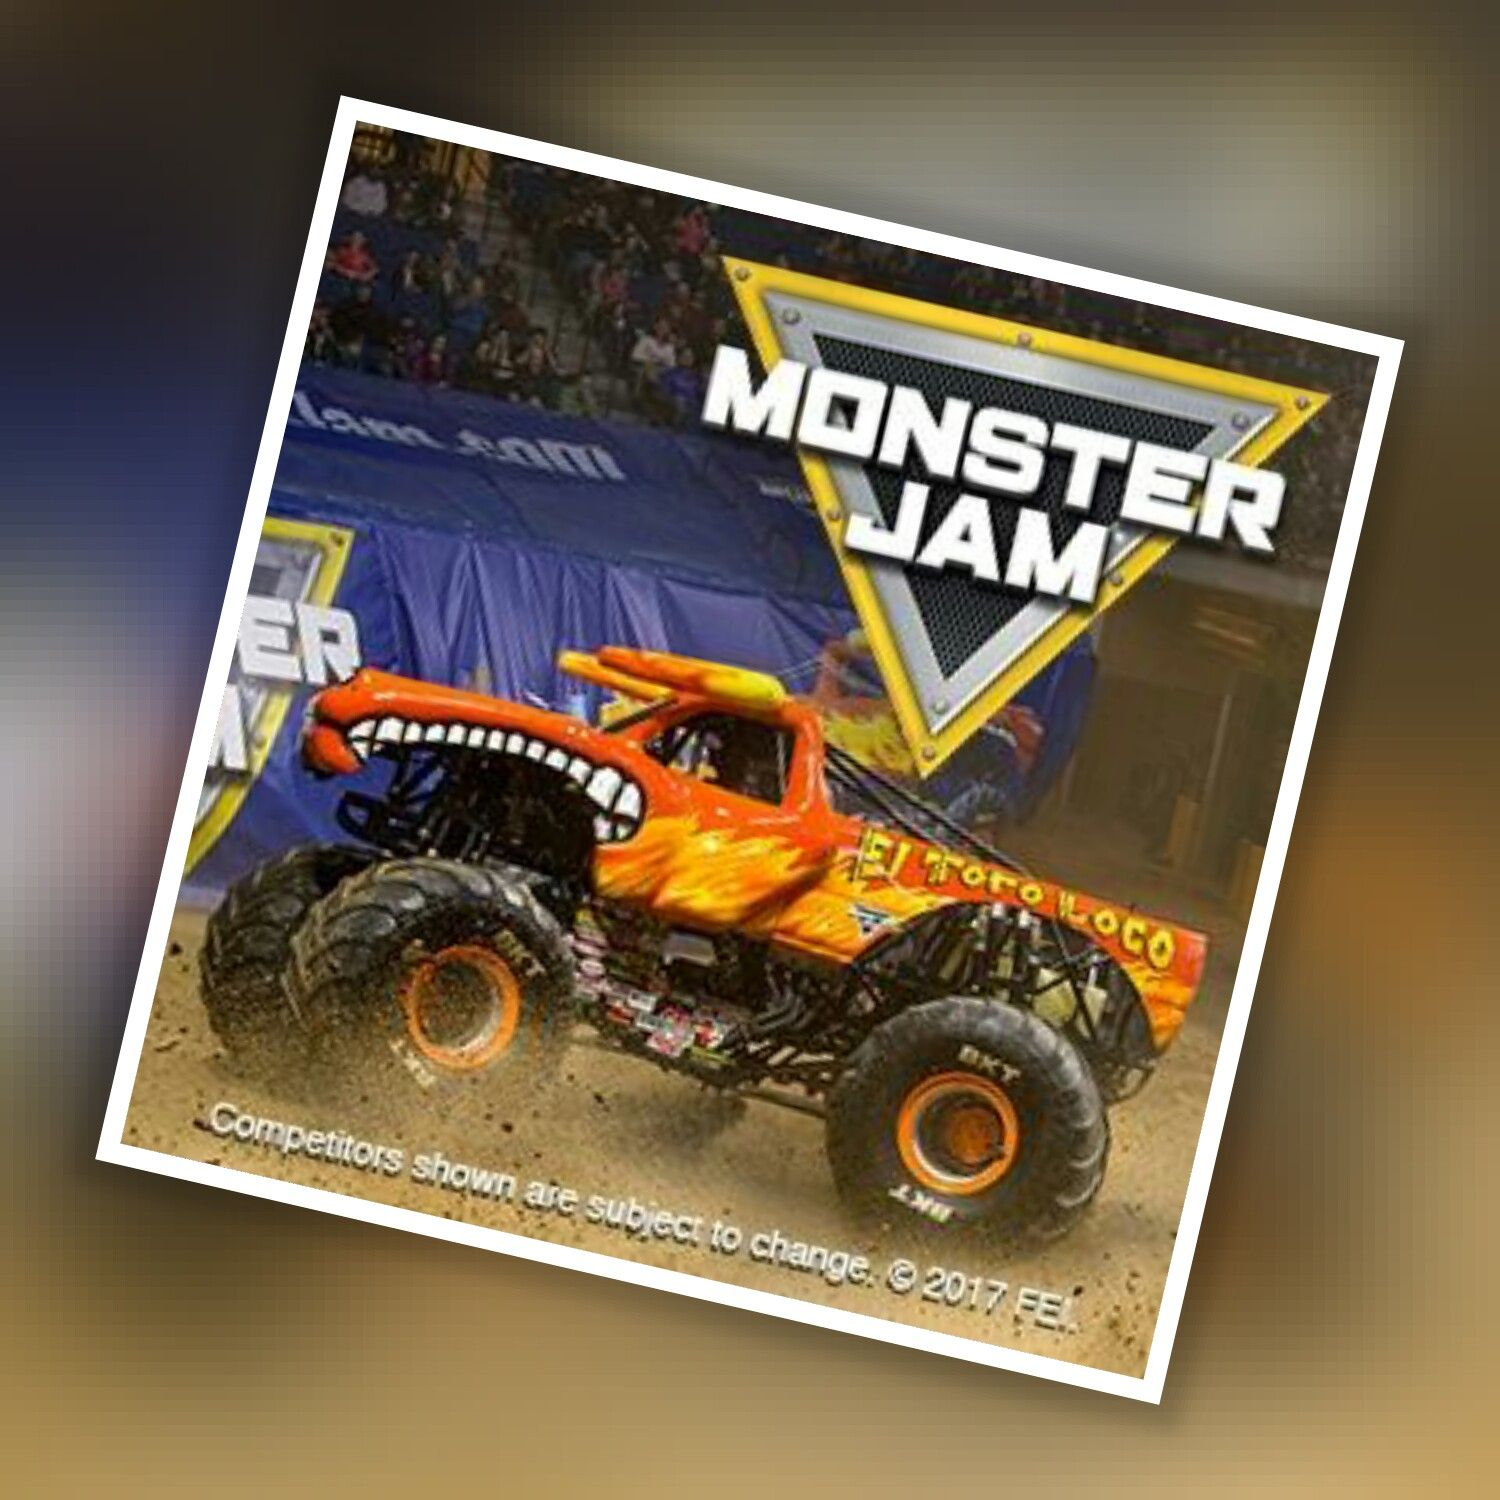 Buy Tickets for Monster Jam 19/05/18Principality Stadium, Cardiff available at See Tickets tidd.ly/9782f073